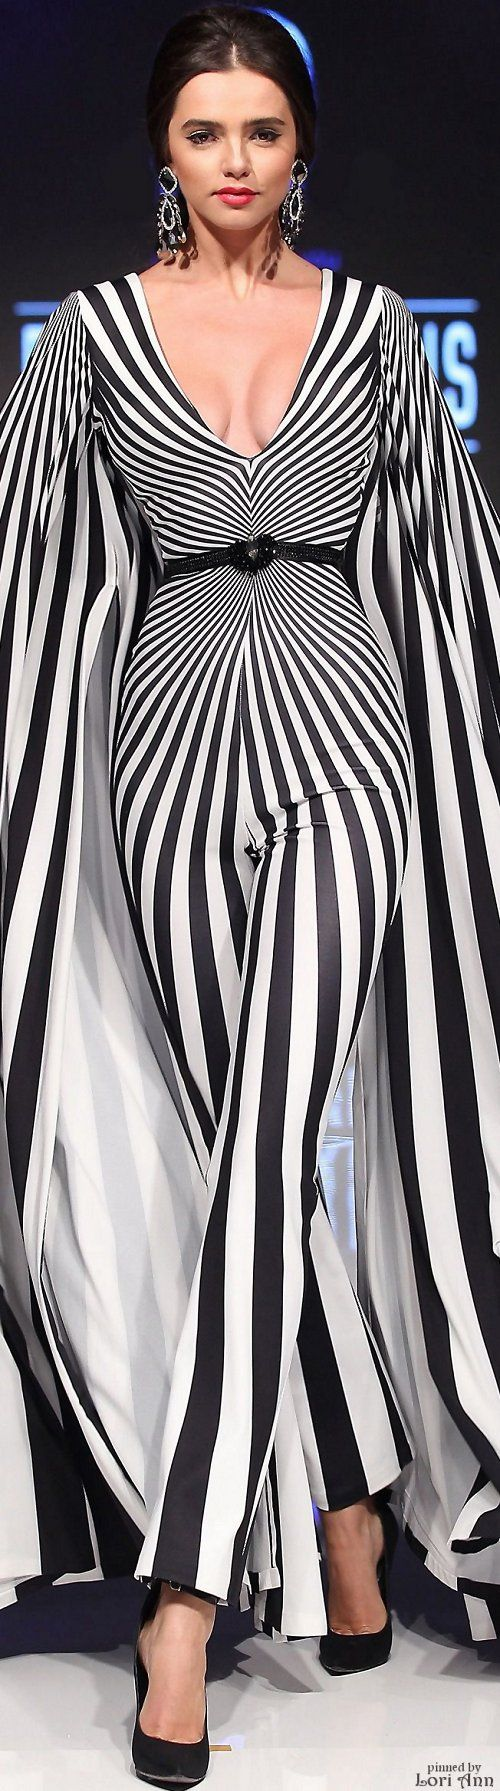 A very, very SD way to do stripes. Krachtige Glamour. Fouad Sarkis Spring 2016 RTW women fashion outfit clothing style apparel @roressclothes closet ideas